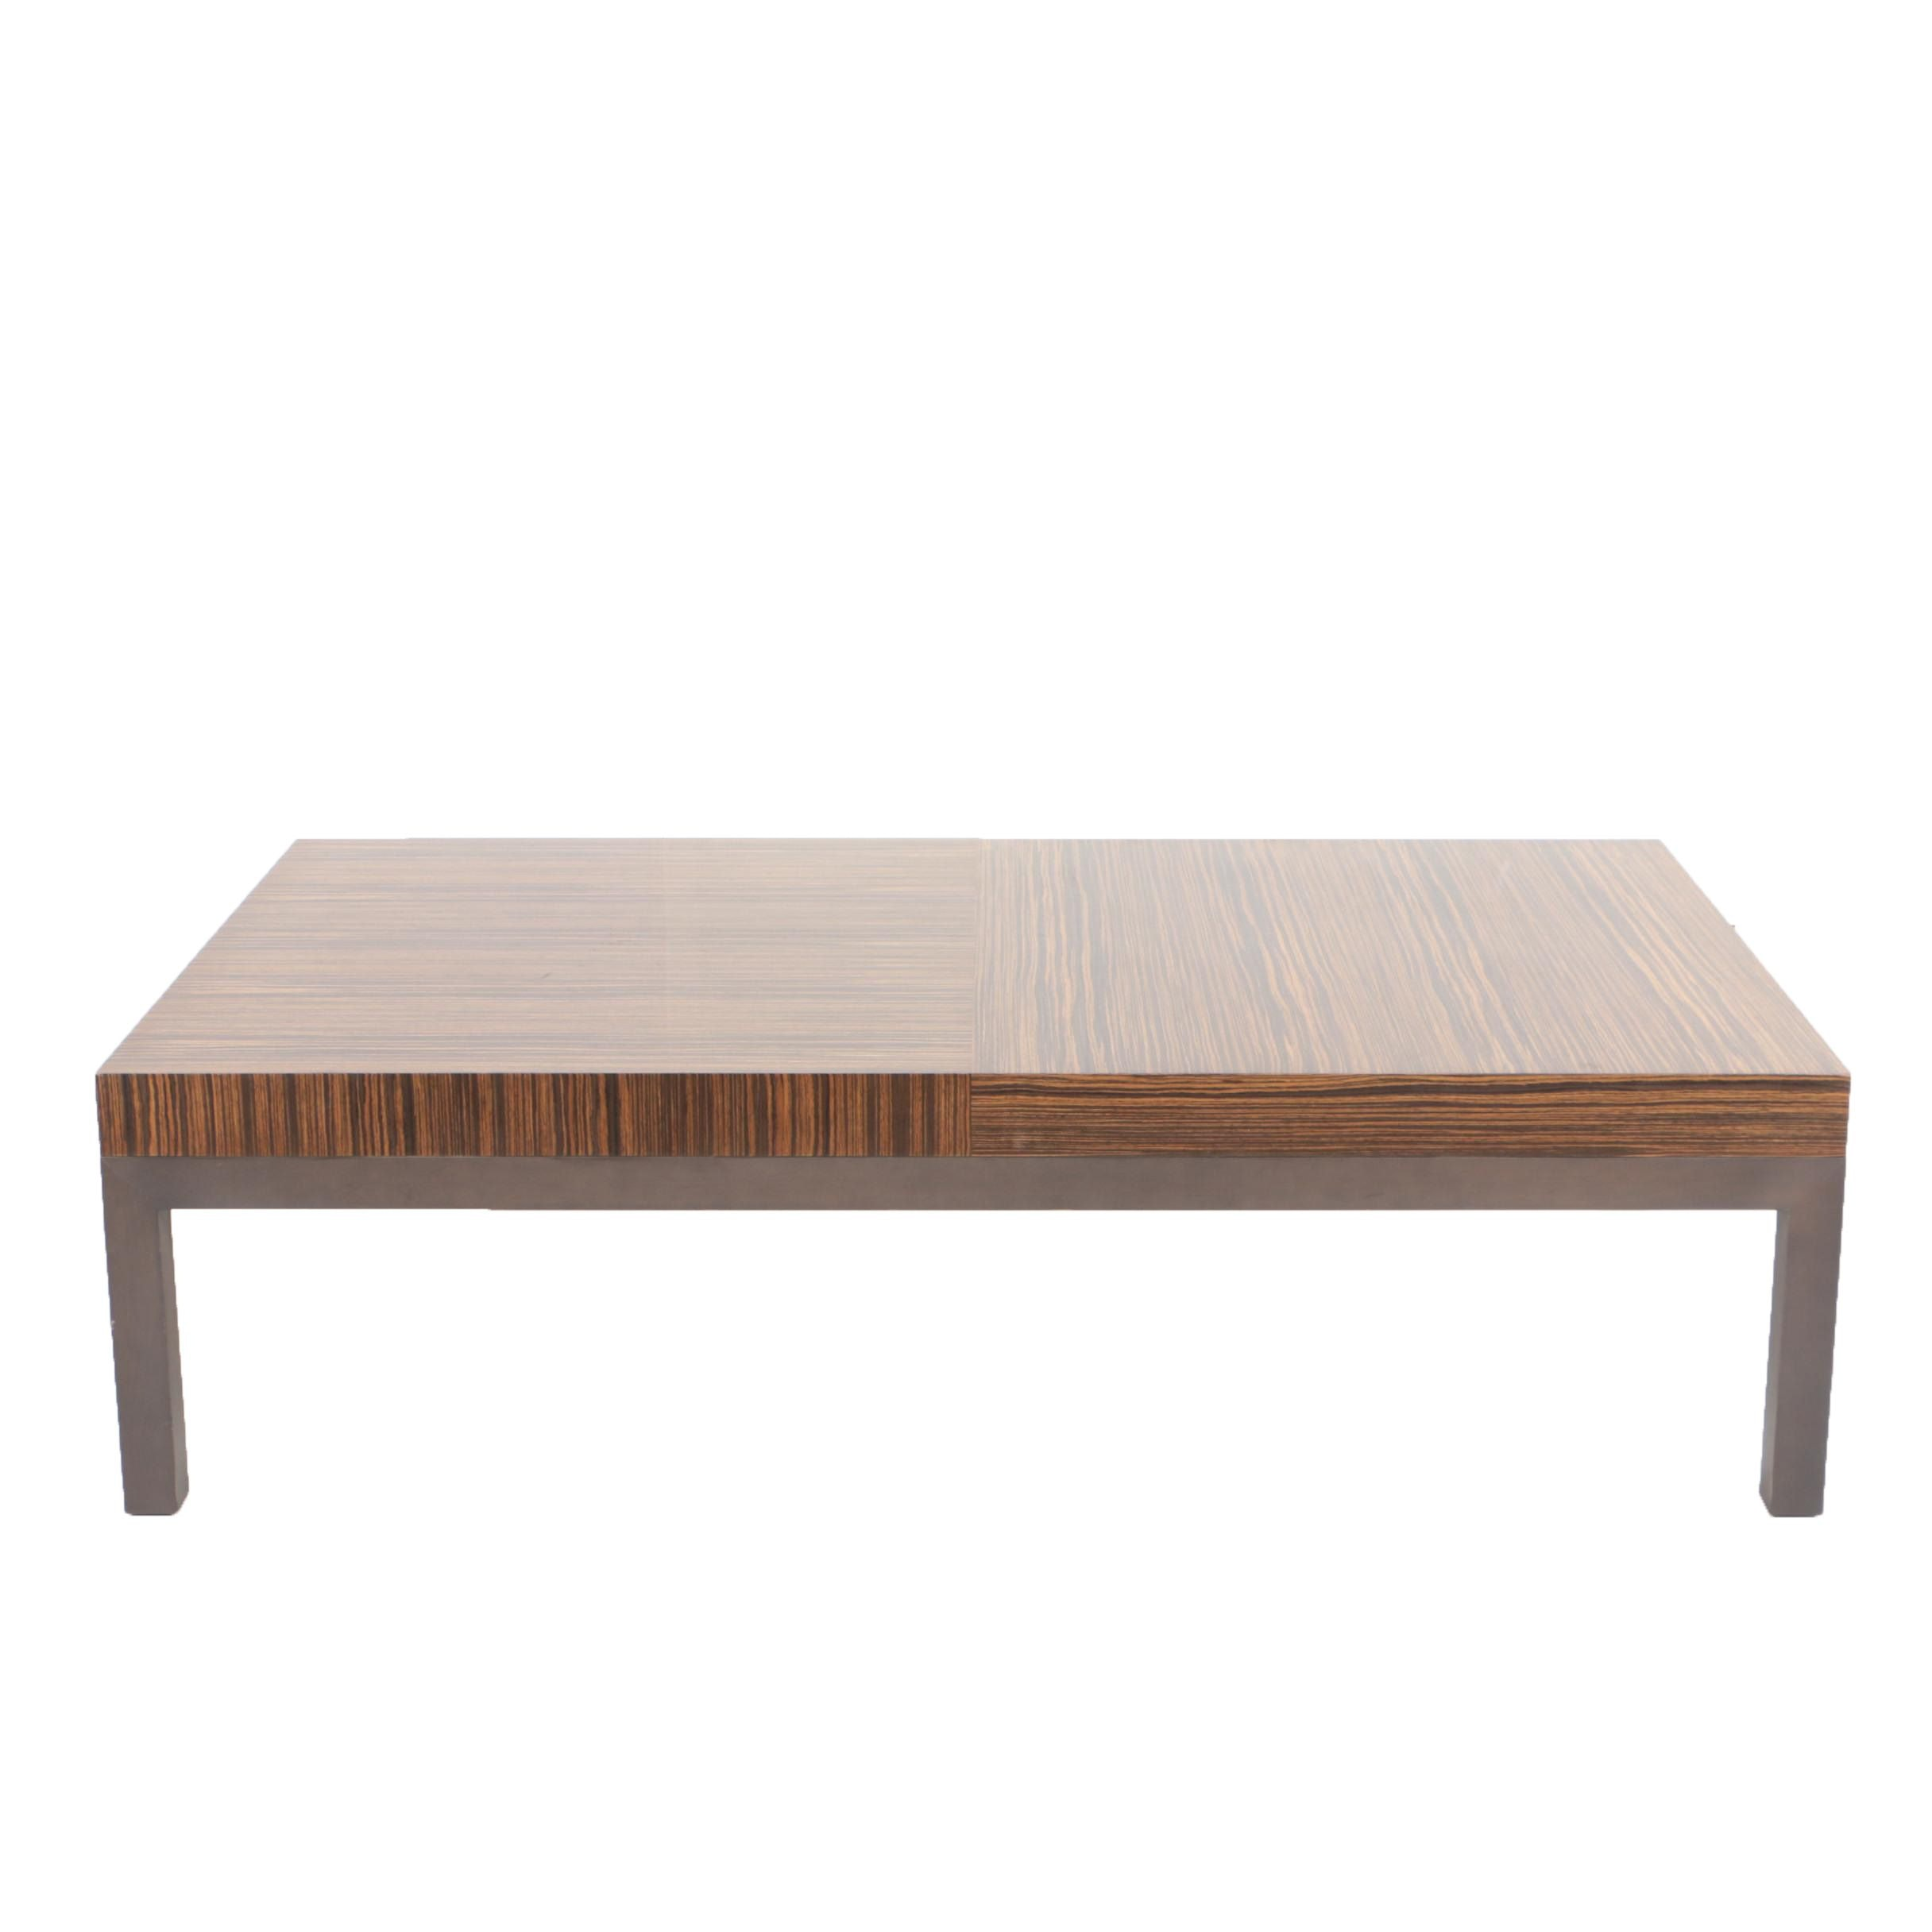 Custom Designed and Fabricated Zebrawood Coffee Table